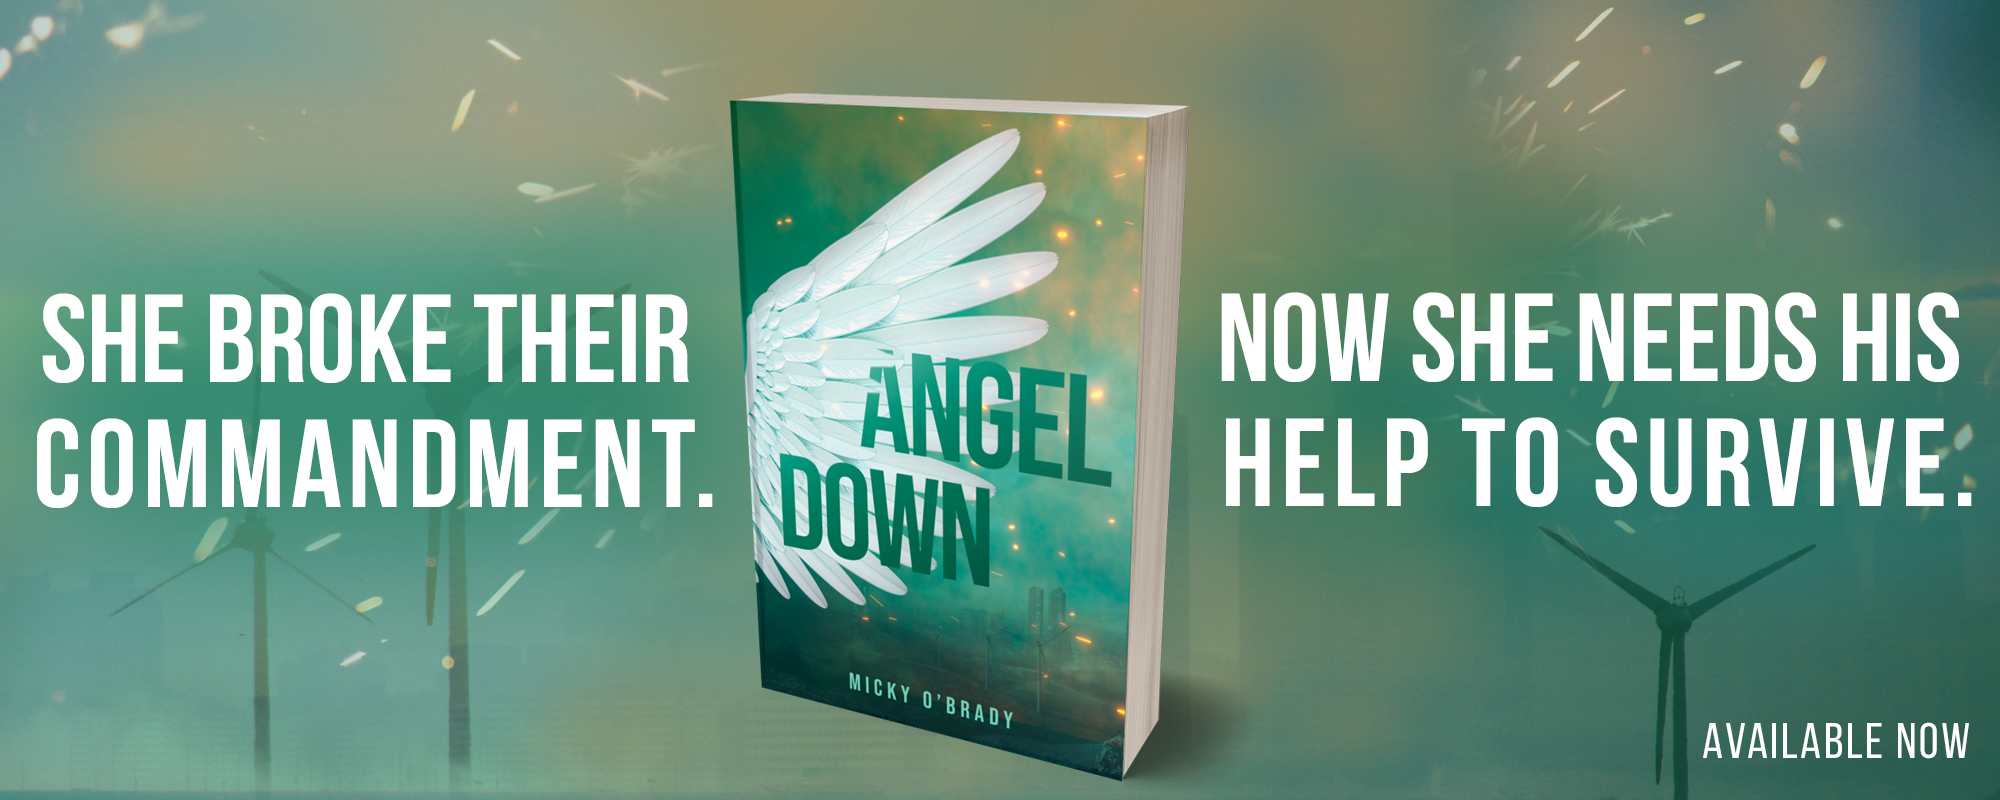 Angel Down by Micky O'Brady, available now